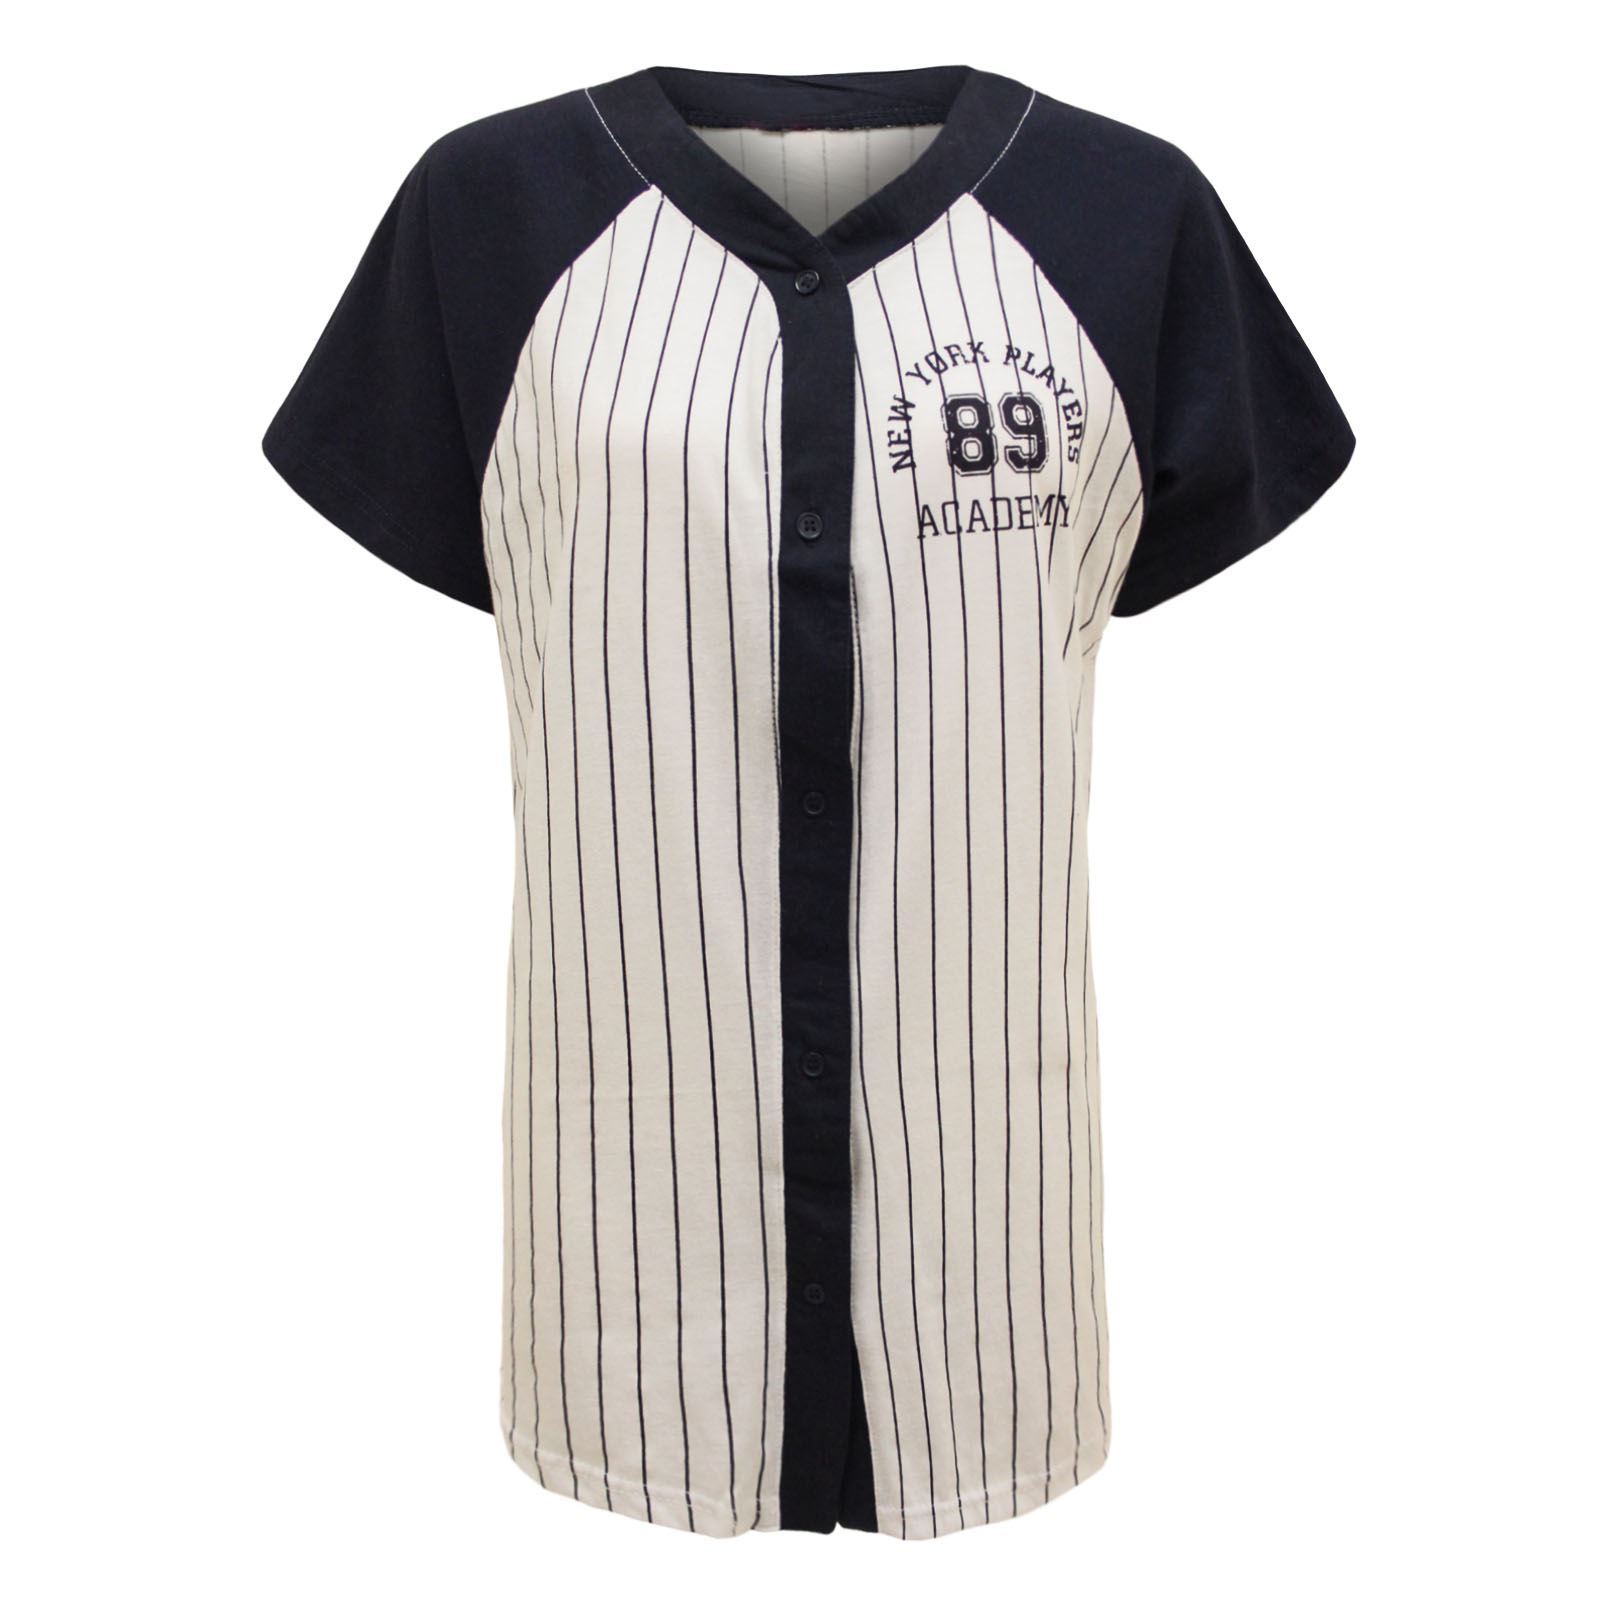 Blanycool Womens Baseball T-Shirt 3/4 Sleeve Raglan Shirts Casual Color Block Tops Blouse. by Blanycool. $ - $ $ 13 $ 15 99 Prime. FREE Shipping on eligible orders. Some sizes/colors are Prime eligible. out of 5 stars 8.